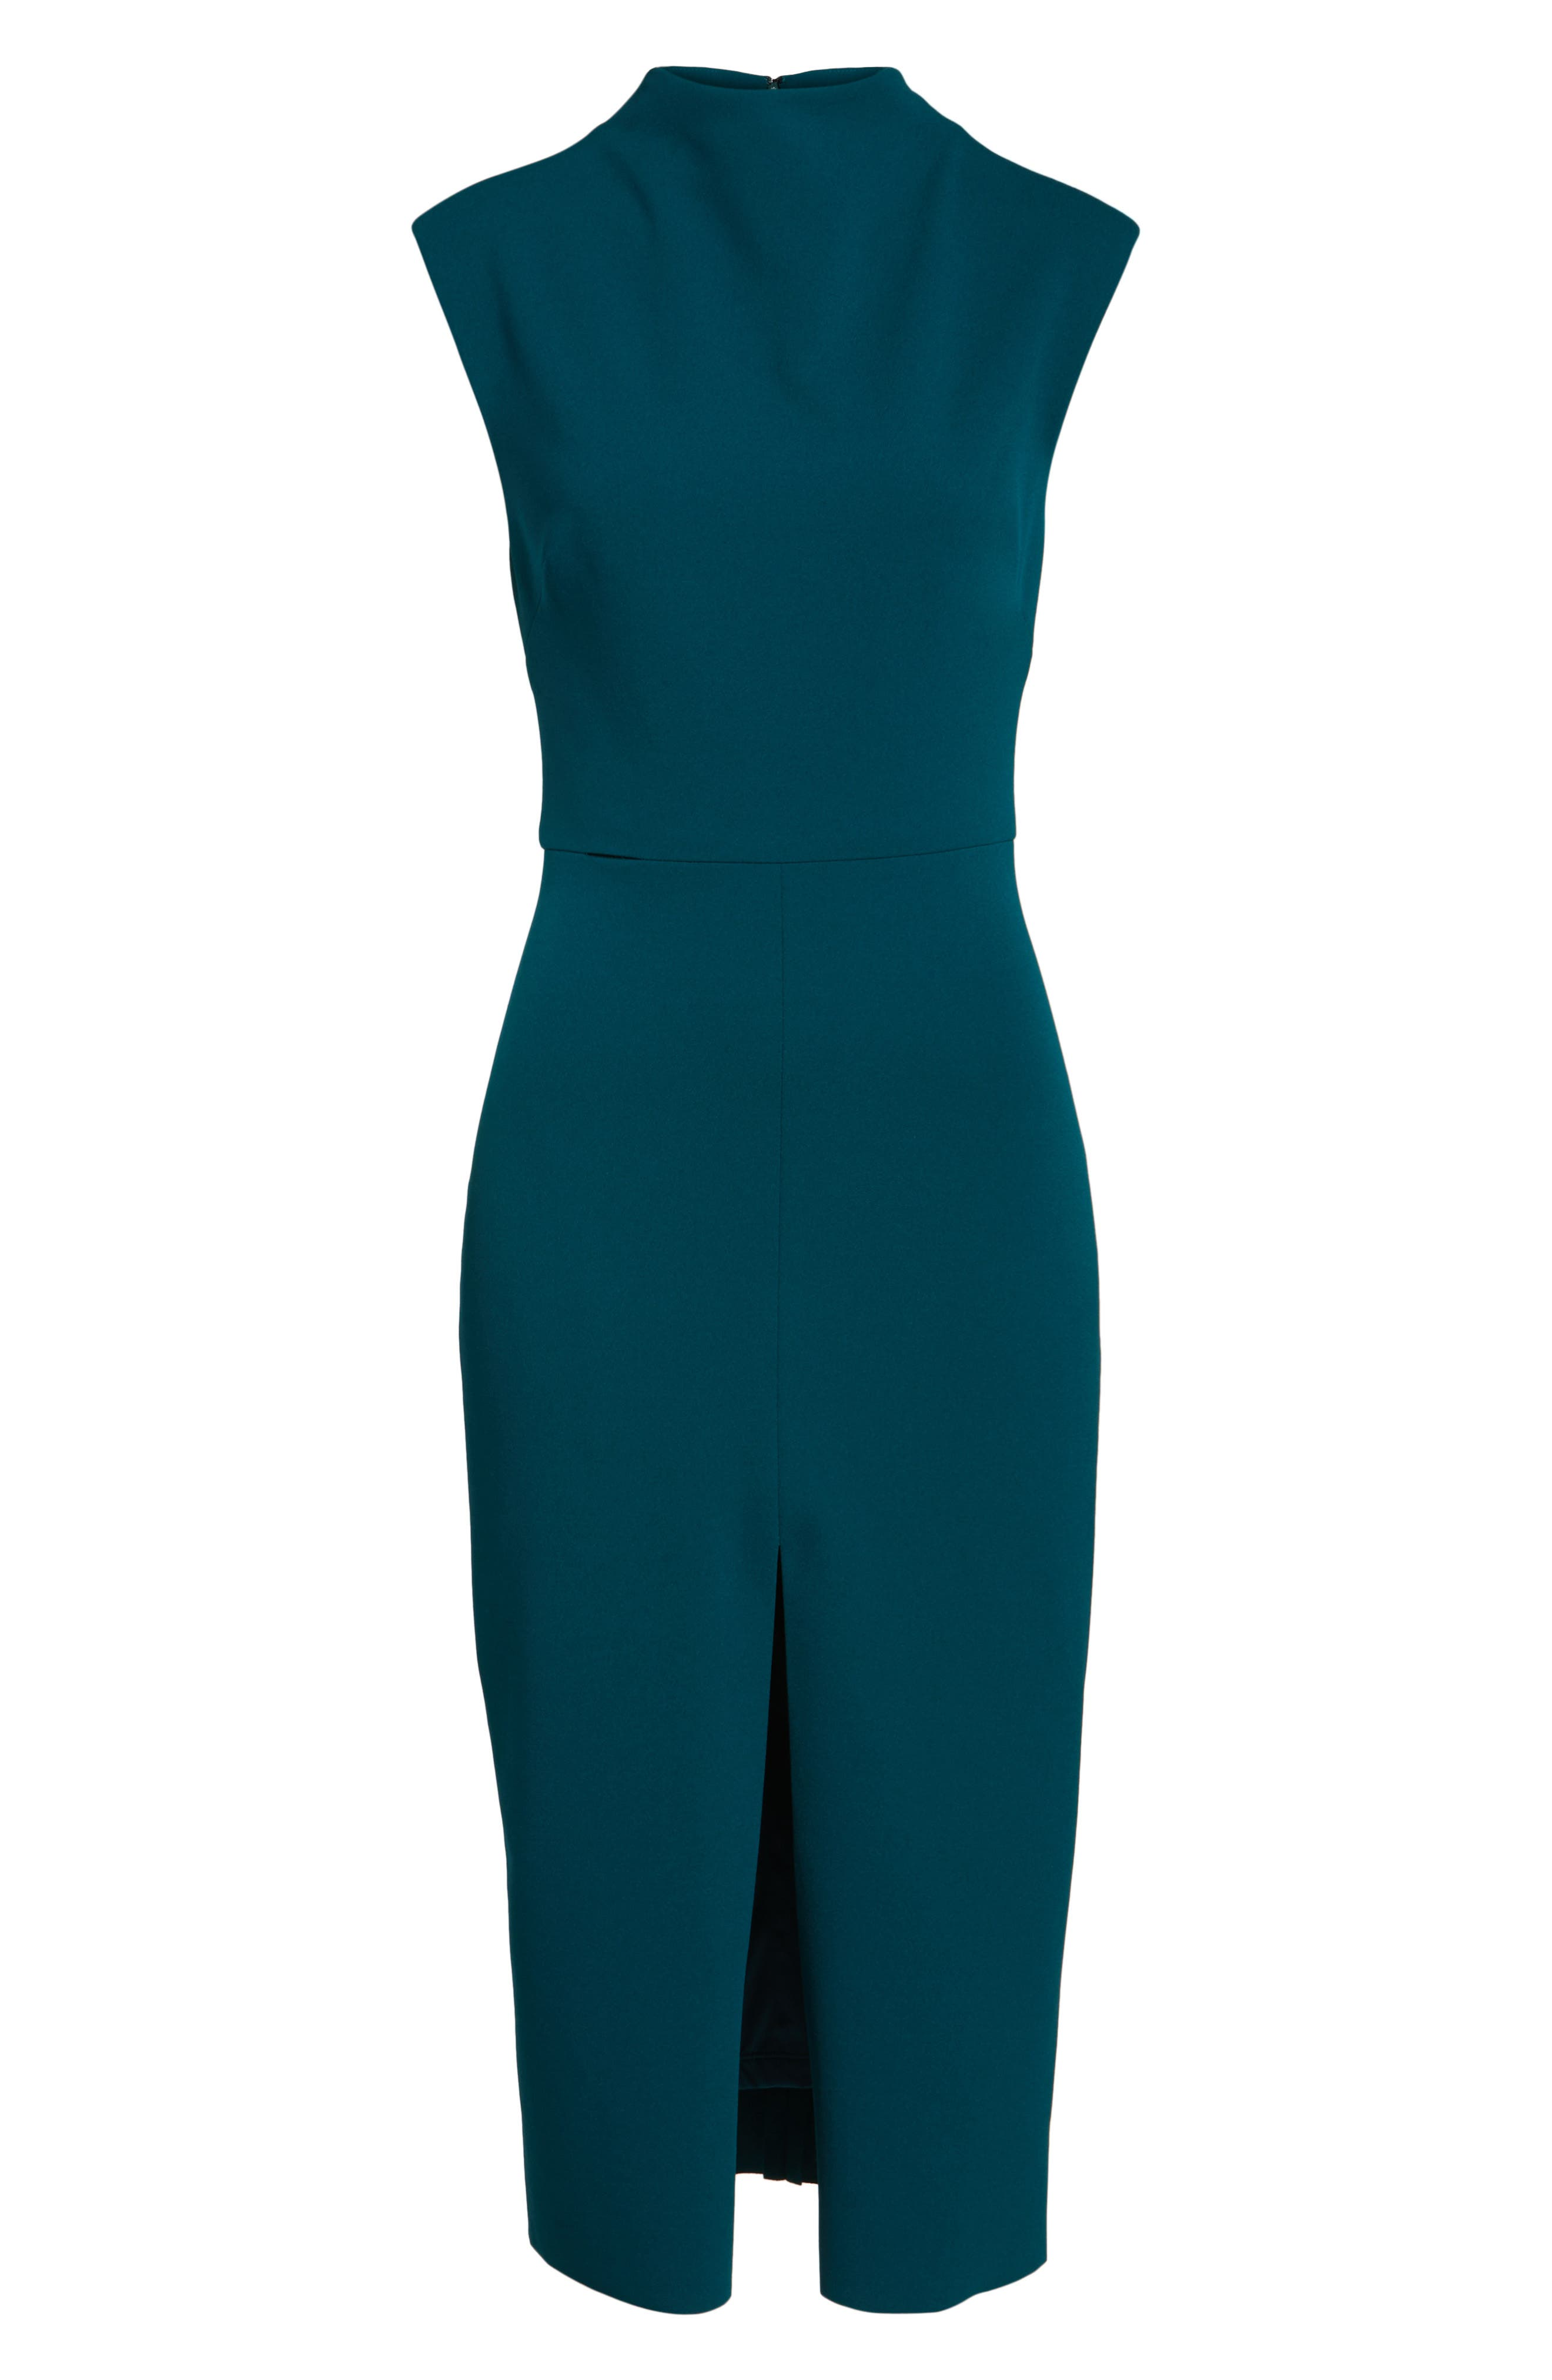 Crepe Midi Dress,                             Alternate thumbnail 7, color,                             Pine